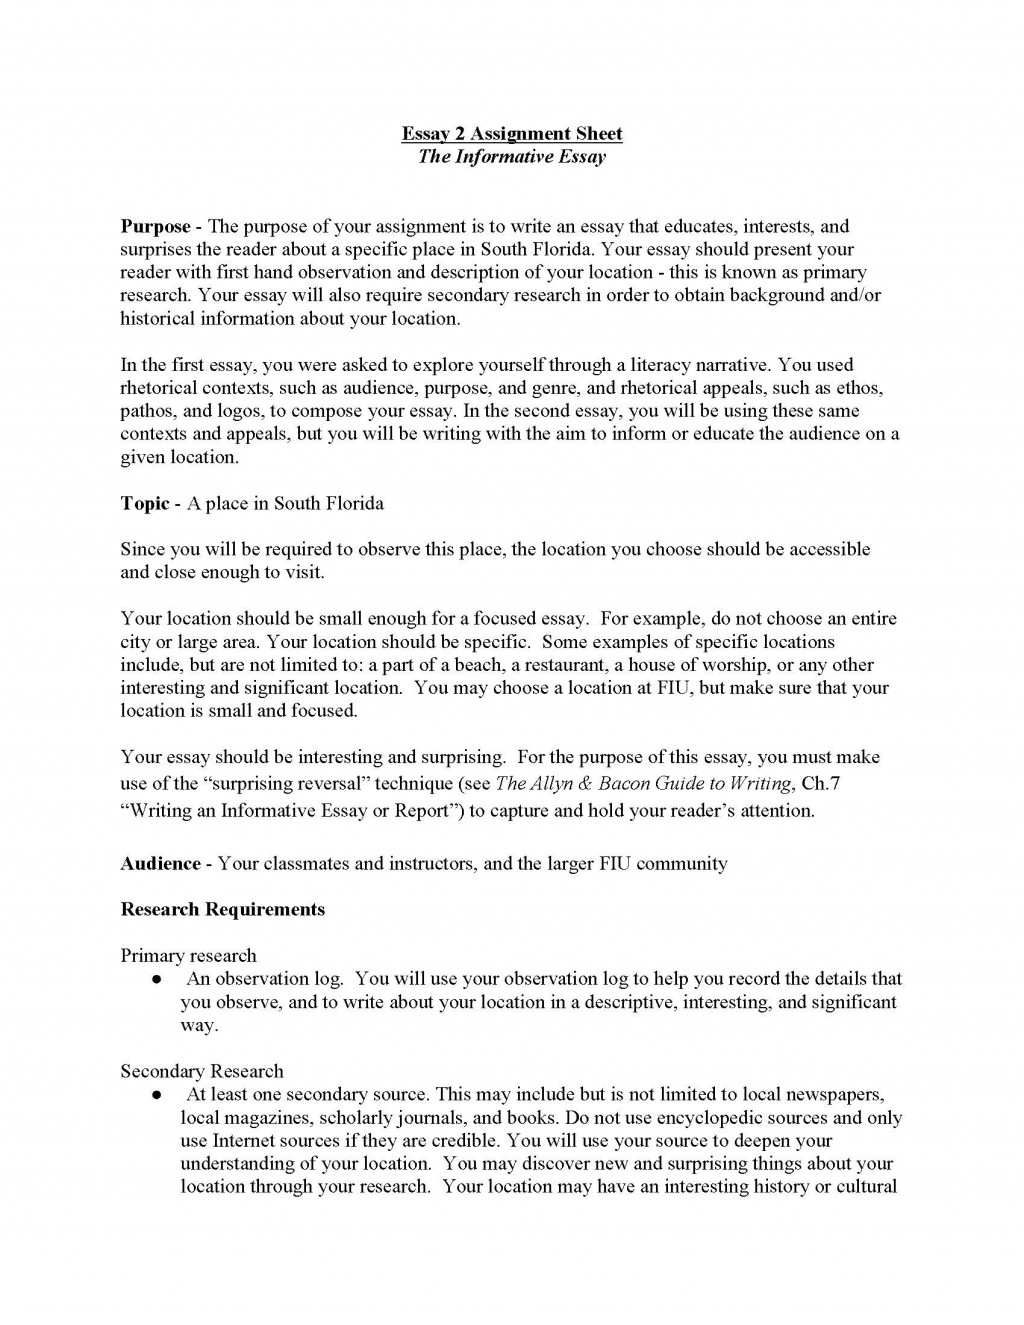 016 Informative Essay Unit Assignment Page 1 Example Sensational Hook Generator Hooks About Feminism College Examples Large